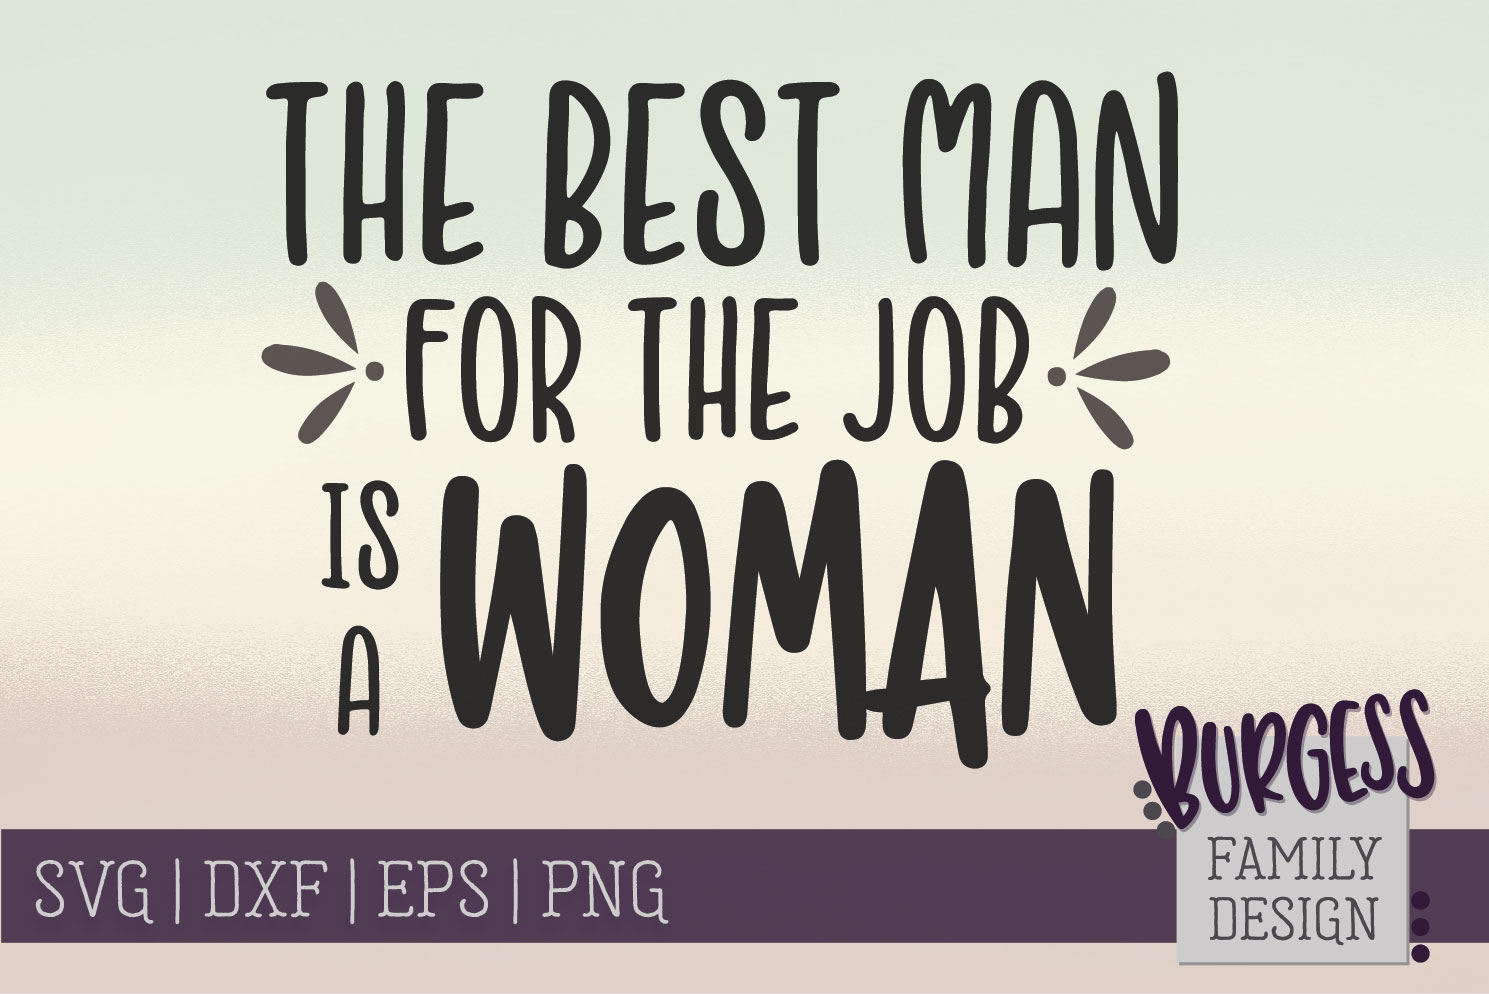 The best man for the job is a woman SVG DXF EPS PNG JPEG example image 2